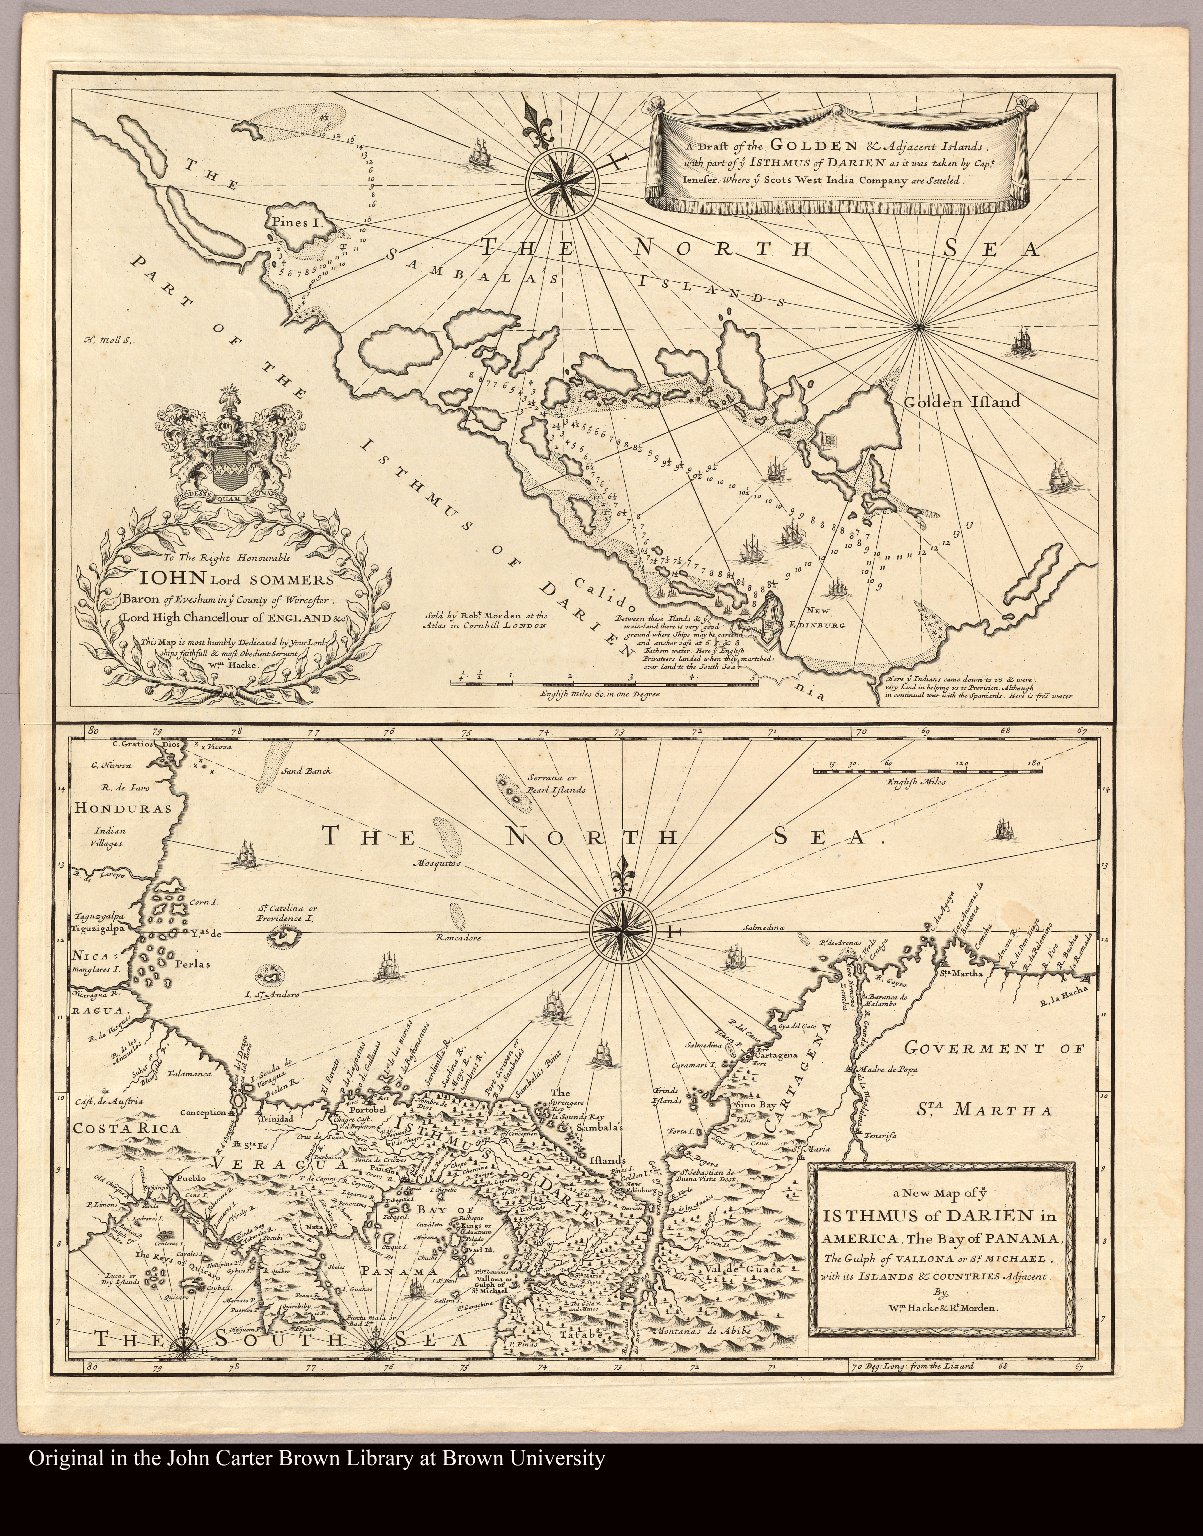 A draft of the Golden & Adjacent Islands with part of ye Isthmus of Darien as it was taken by Capt. Ienefer where ye Scots West India Company were setteled and, A new map of ye Isthmus of Darien in America, the Bay of Panama, the Gulph of Vallona or St. Michael, with its Islands & countries adjacent by Wm. Hacke & Rt. Morden